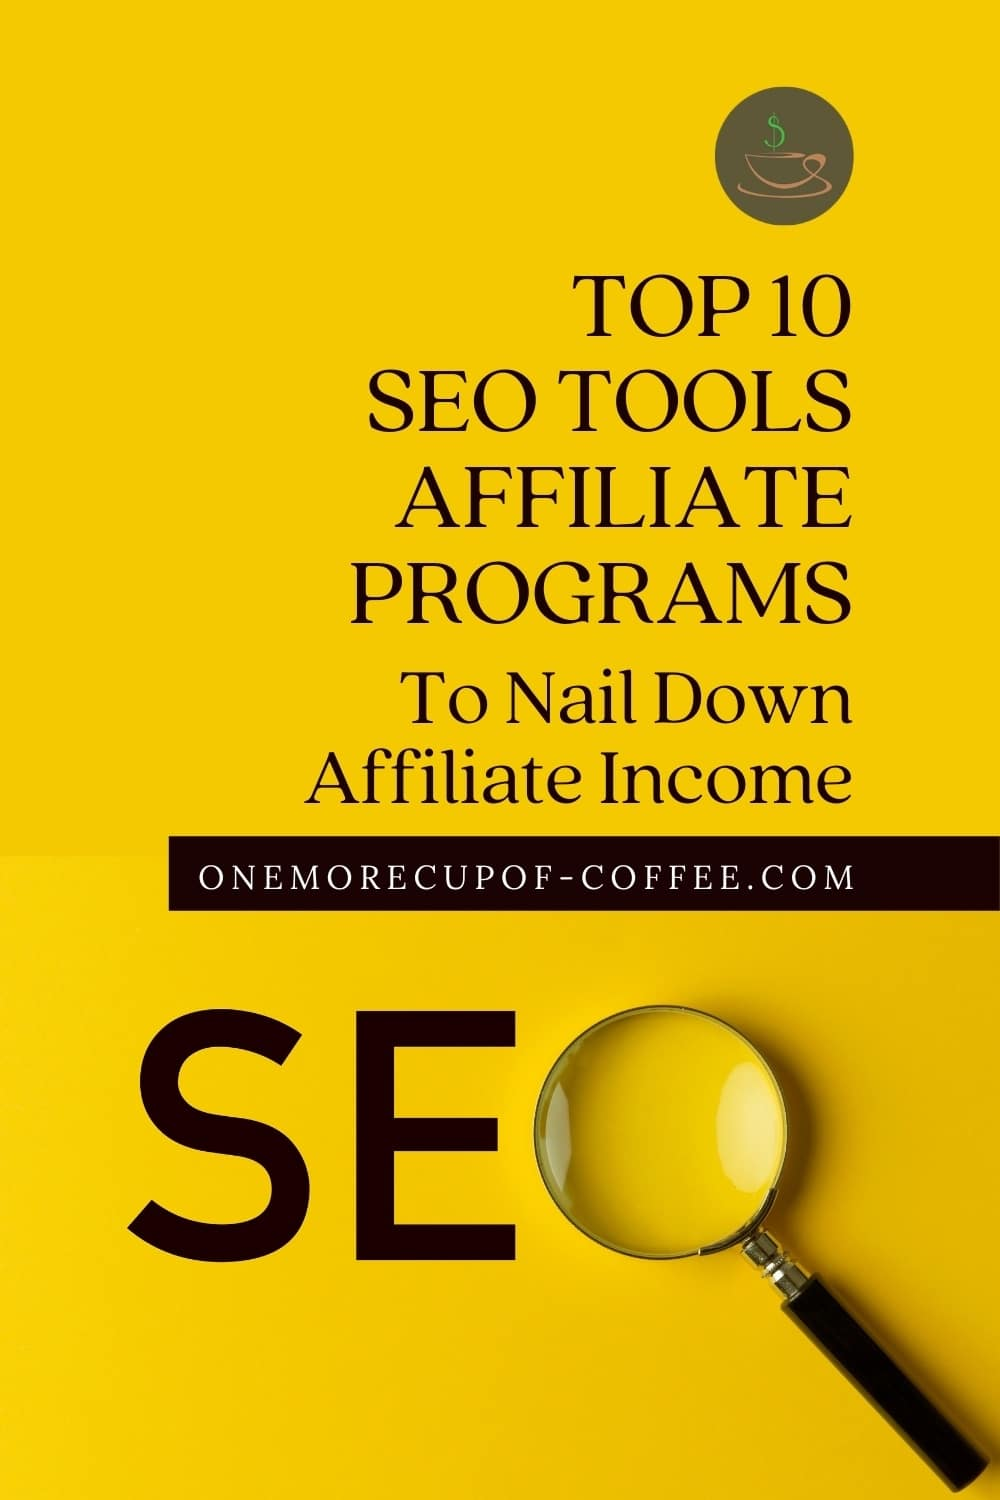 """yellow background with the capital letters S, E, and a magnifying glass in place of the letter O; with text overlay """"Top 10 SEO Tools Affiliate Programs To Nail Down Affiliate Income"""""""